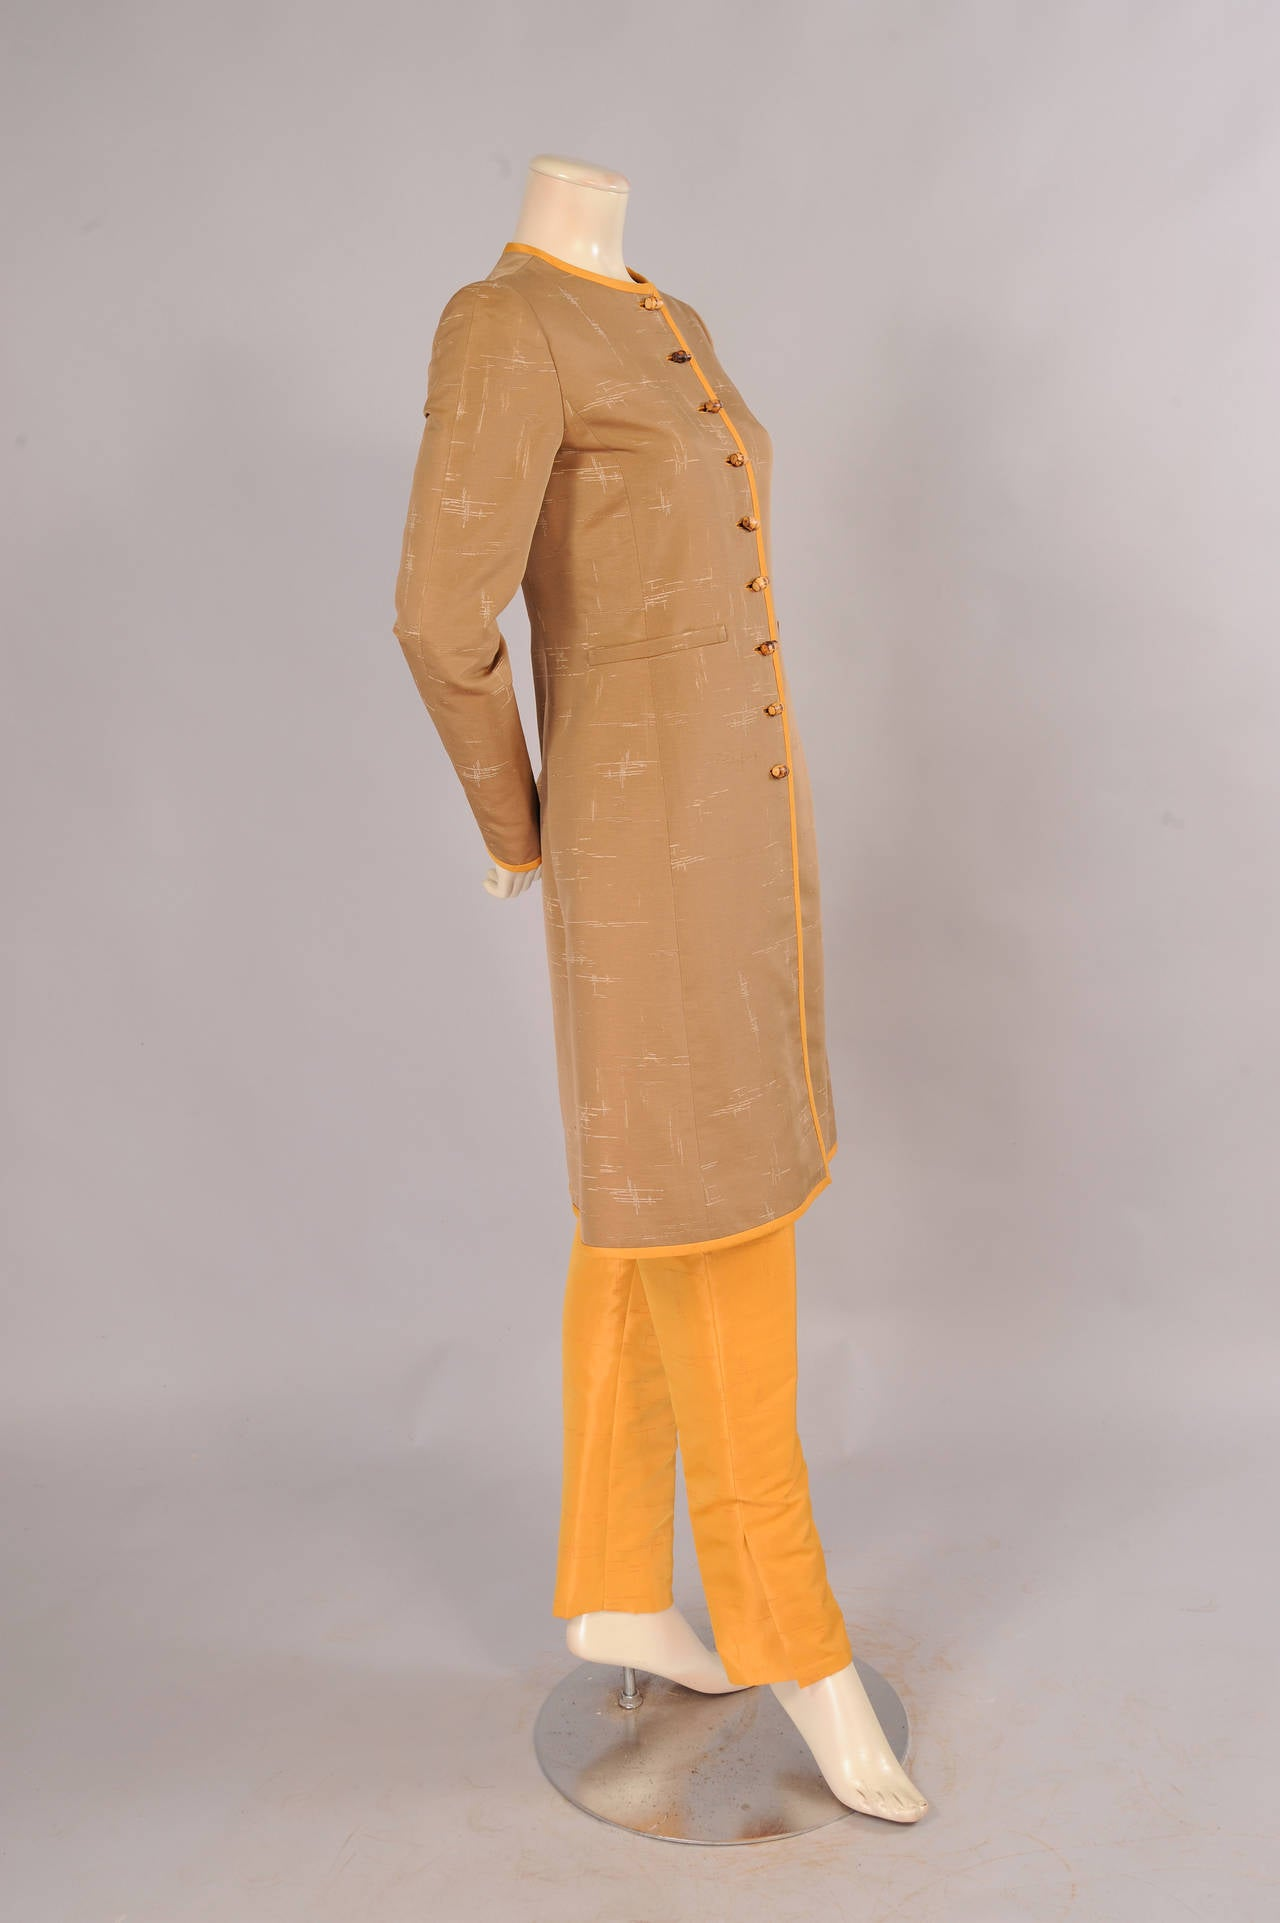 Brown Oscar de la Renta Slim Coat & Pants Ensemble in Tan and Saffron Silk For Sale